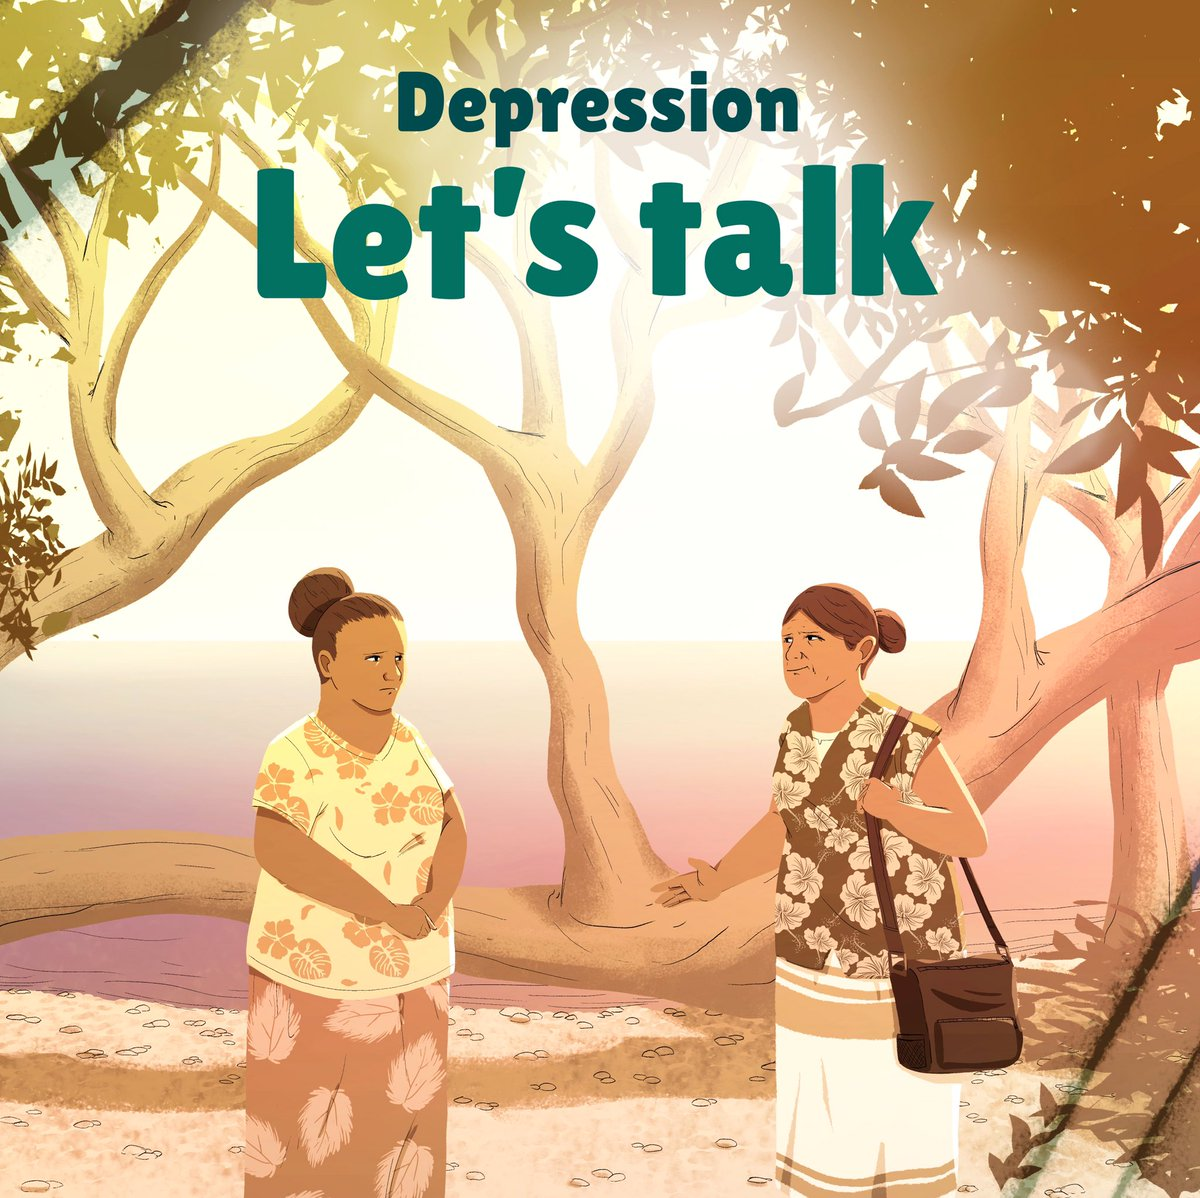 World Health Organization WHO On Twitter Like Our Day Posters Depression Share Them To Your Loved Ones From New Page